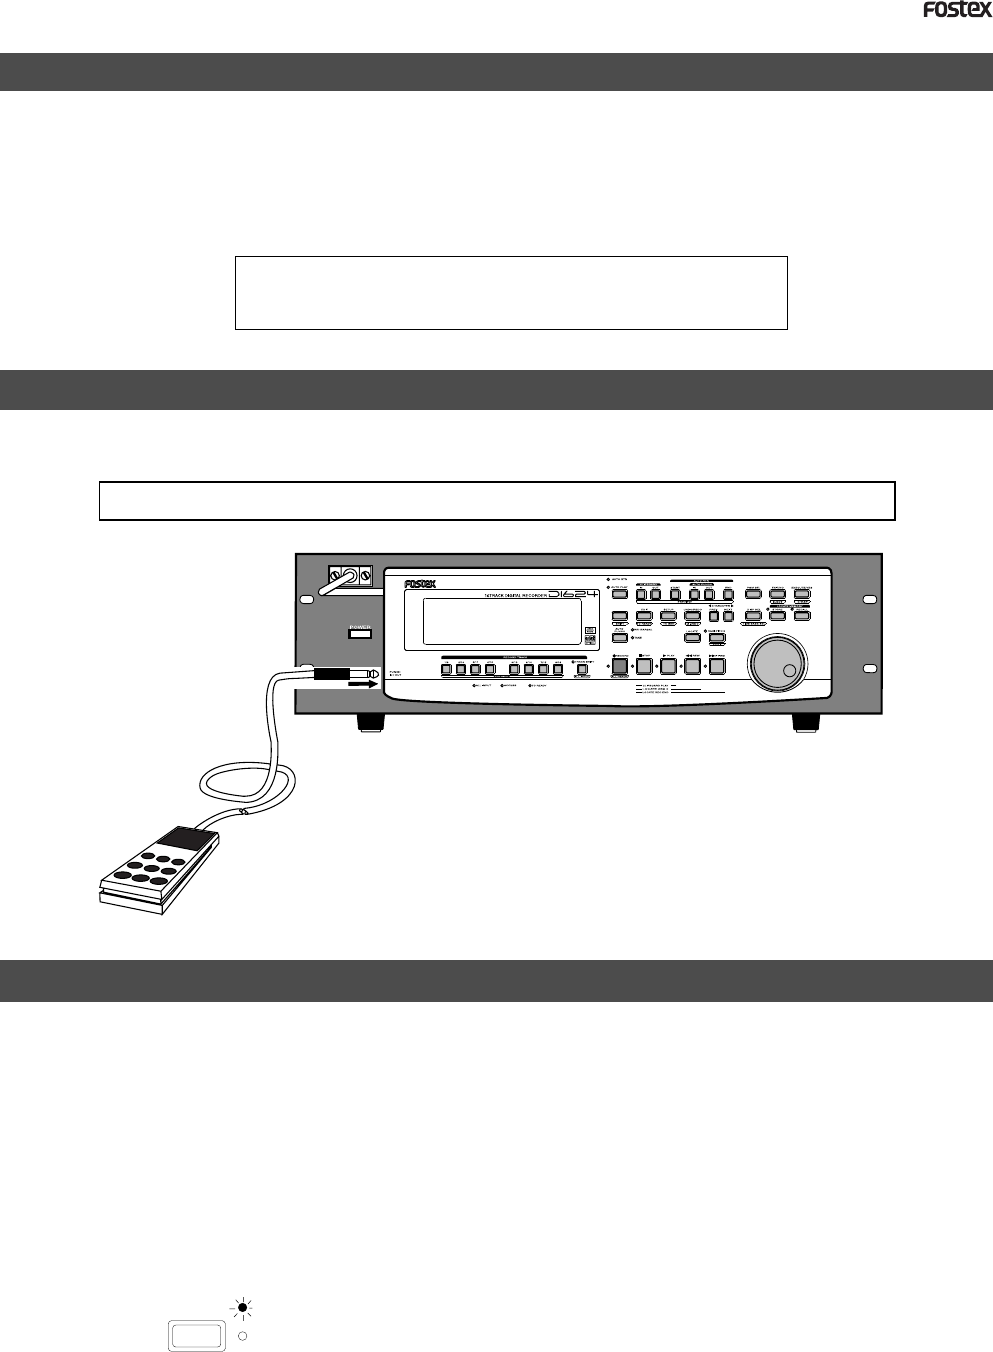 page 43 of fostex dvd recorder d824 user guide manualsonline com rh tv manualsonline com Kindle Fire User Guide Clip Art User Guide